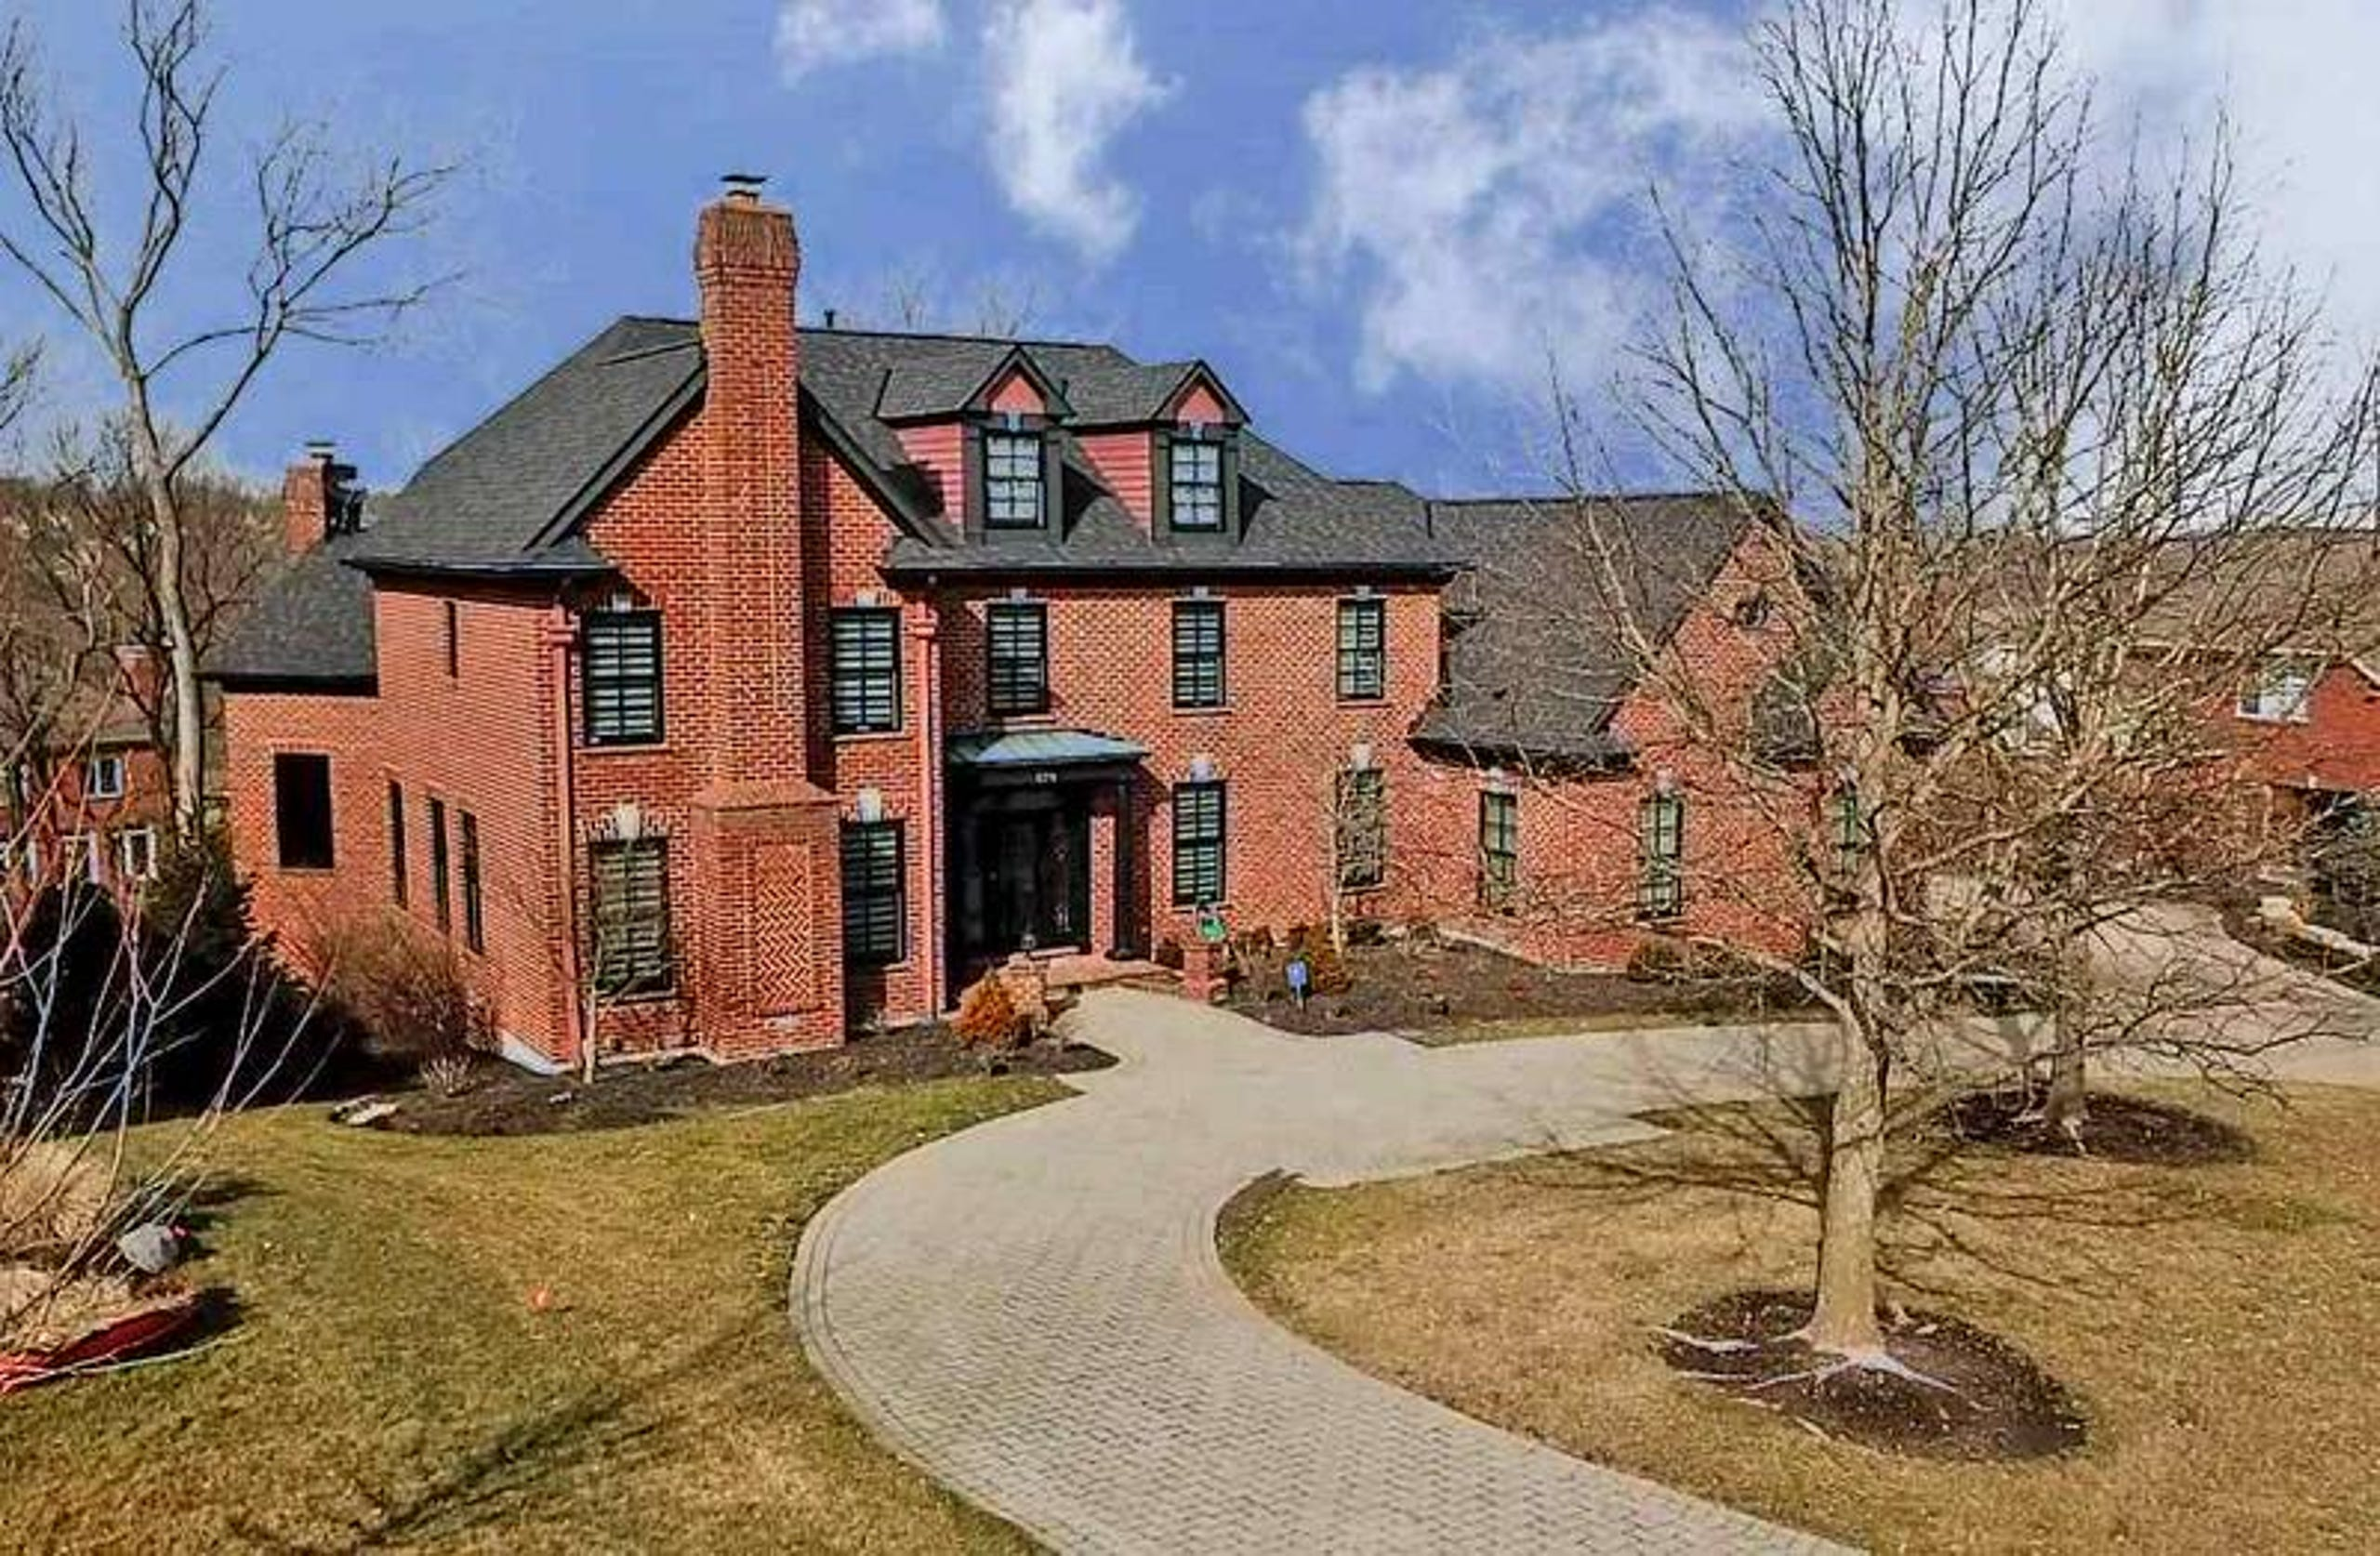 Former Bengals' linebacker Vontaze Burfict is selling this house in Edgewood, Ky., for $1,199,000.